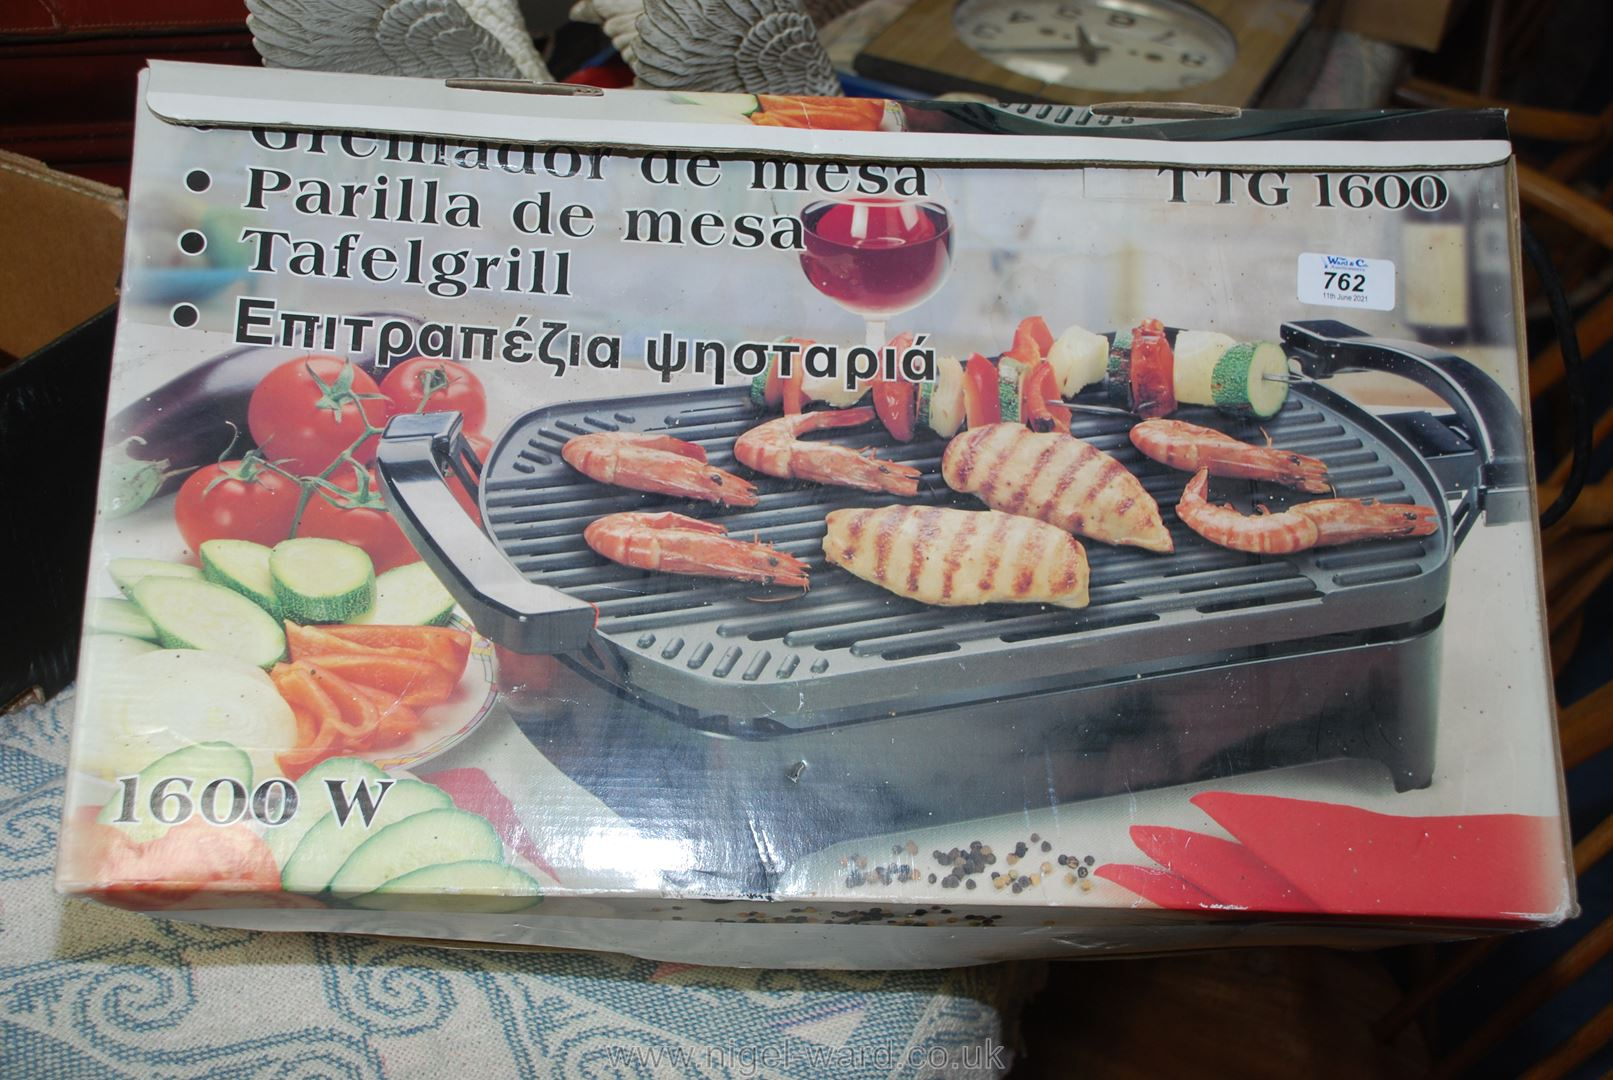 A new boxed electric BBQ/grill.